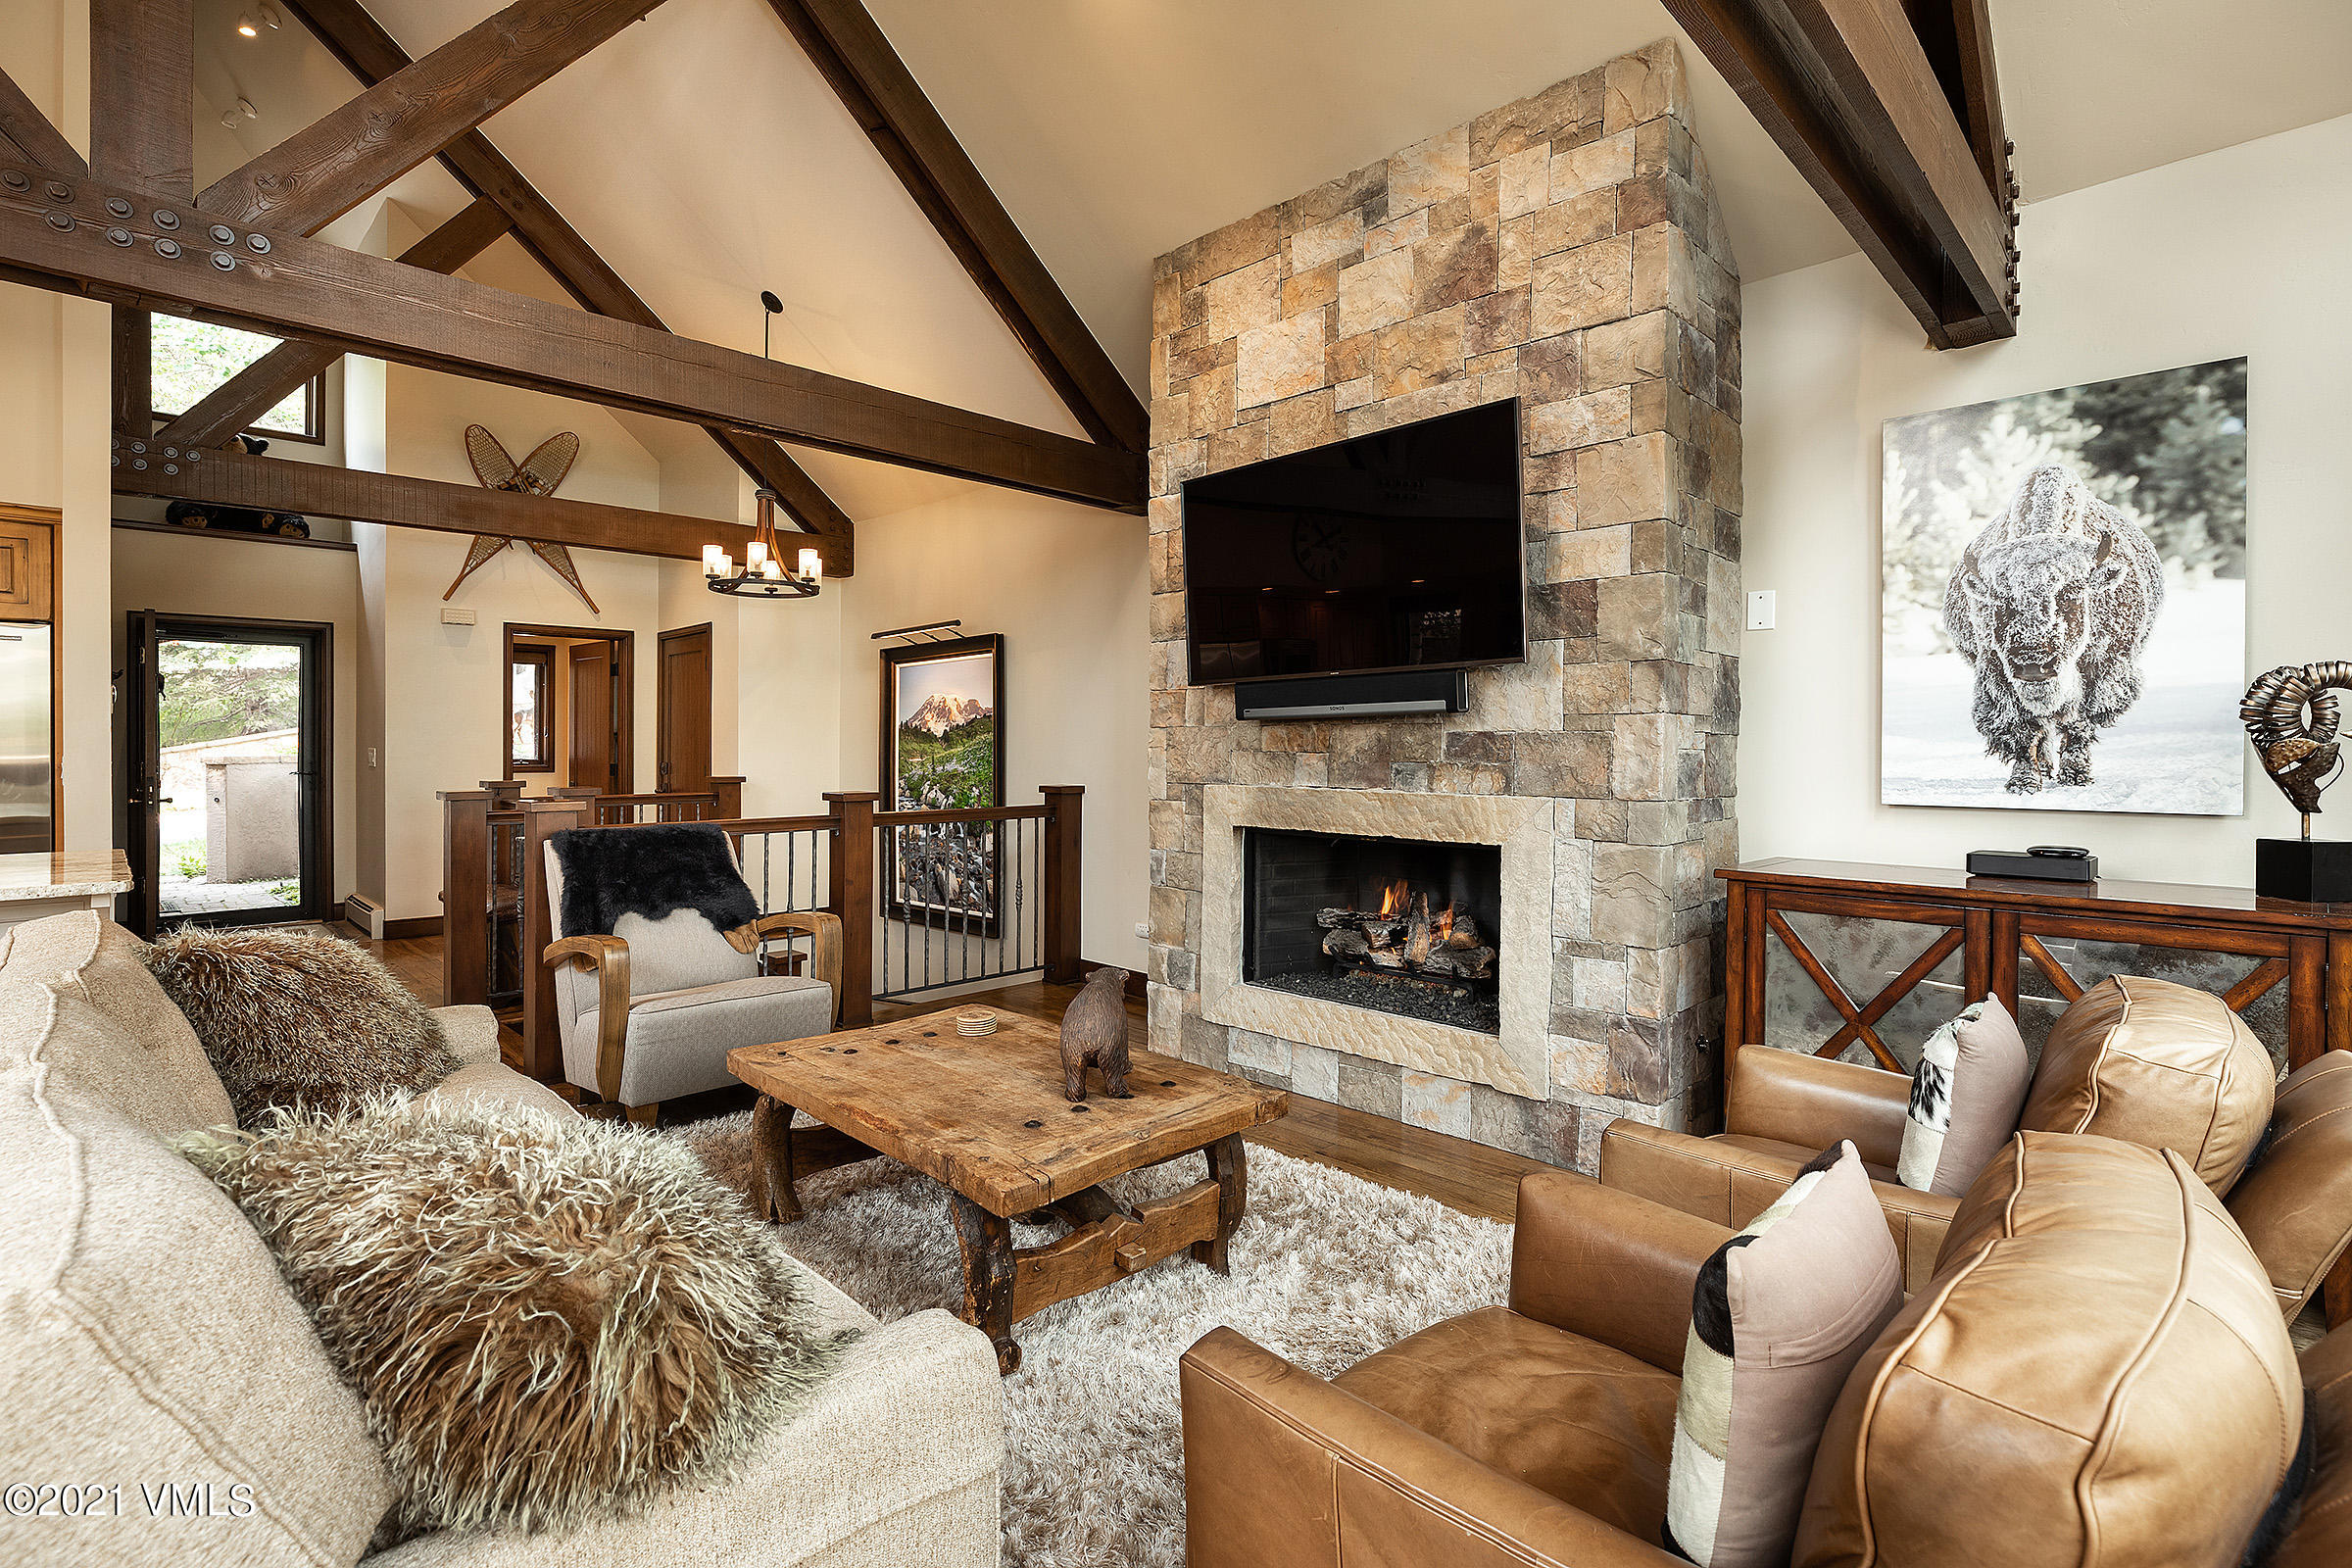 Experience genuine mountain hospitality when you stay with friends and family in this luxurious four bedroom slope-side home is  newly updated and remodeled, air conditioning on the main living level, a generous wrap around balcony for indoor and outdoor living, along with an excellent ski-in location.  Offering 2,140 square-feet of space, comfort and privacy, this stunning mountain vacation home features contemporary, elegant decor and state-of-the-art amenities.